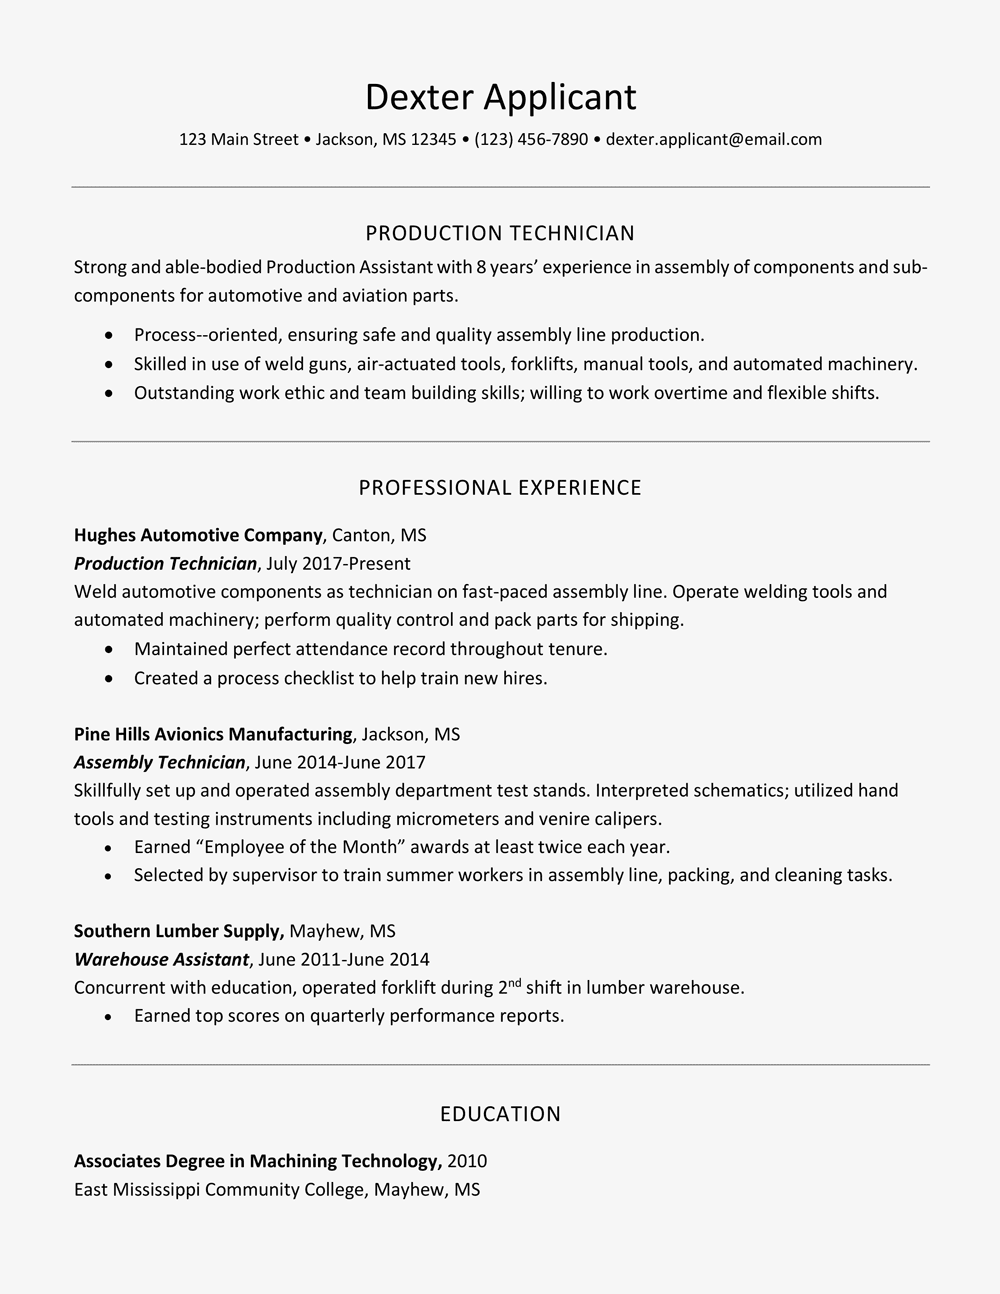 create a professional resume - How To Build A Professional Resume